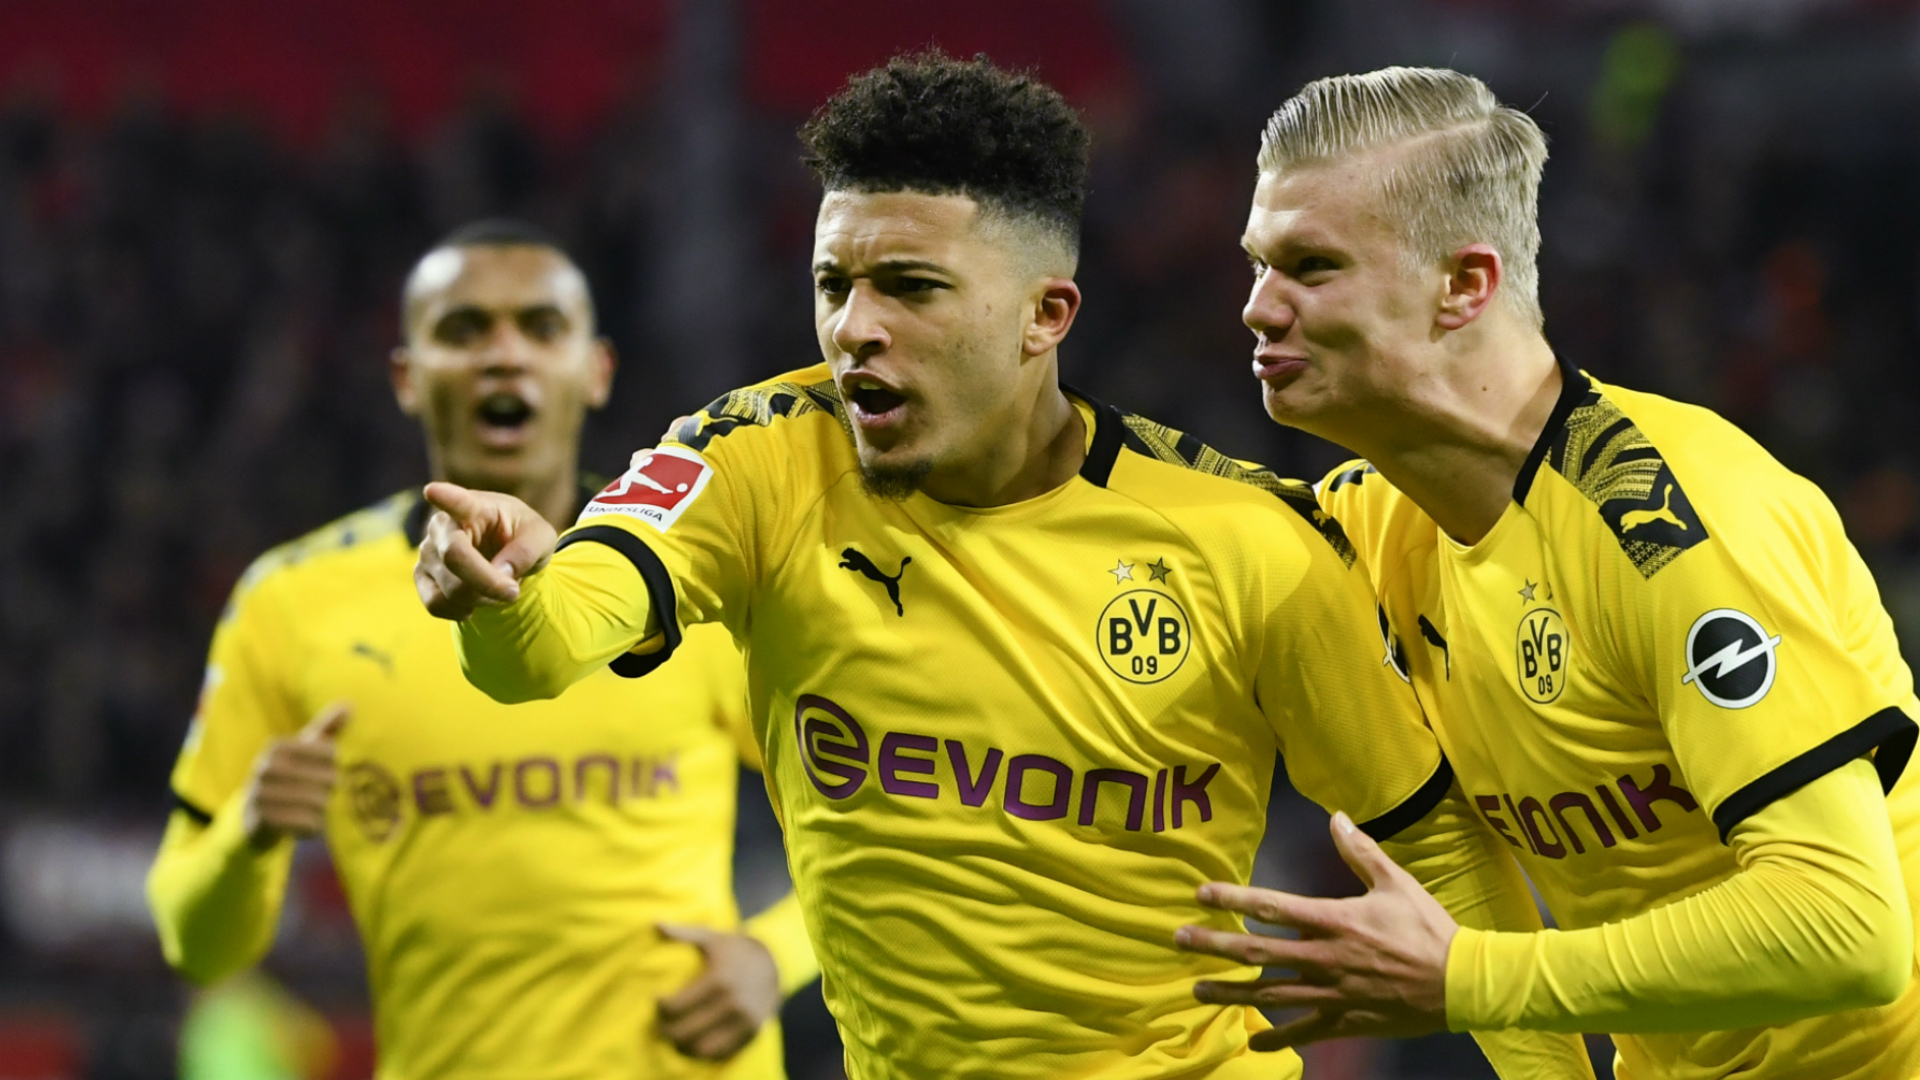 Borussia Dortmund vs Paris Saint-Germain: How to watch on TV in UK U.S., live stream, kick-off time